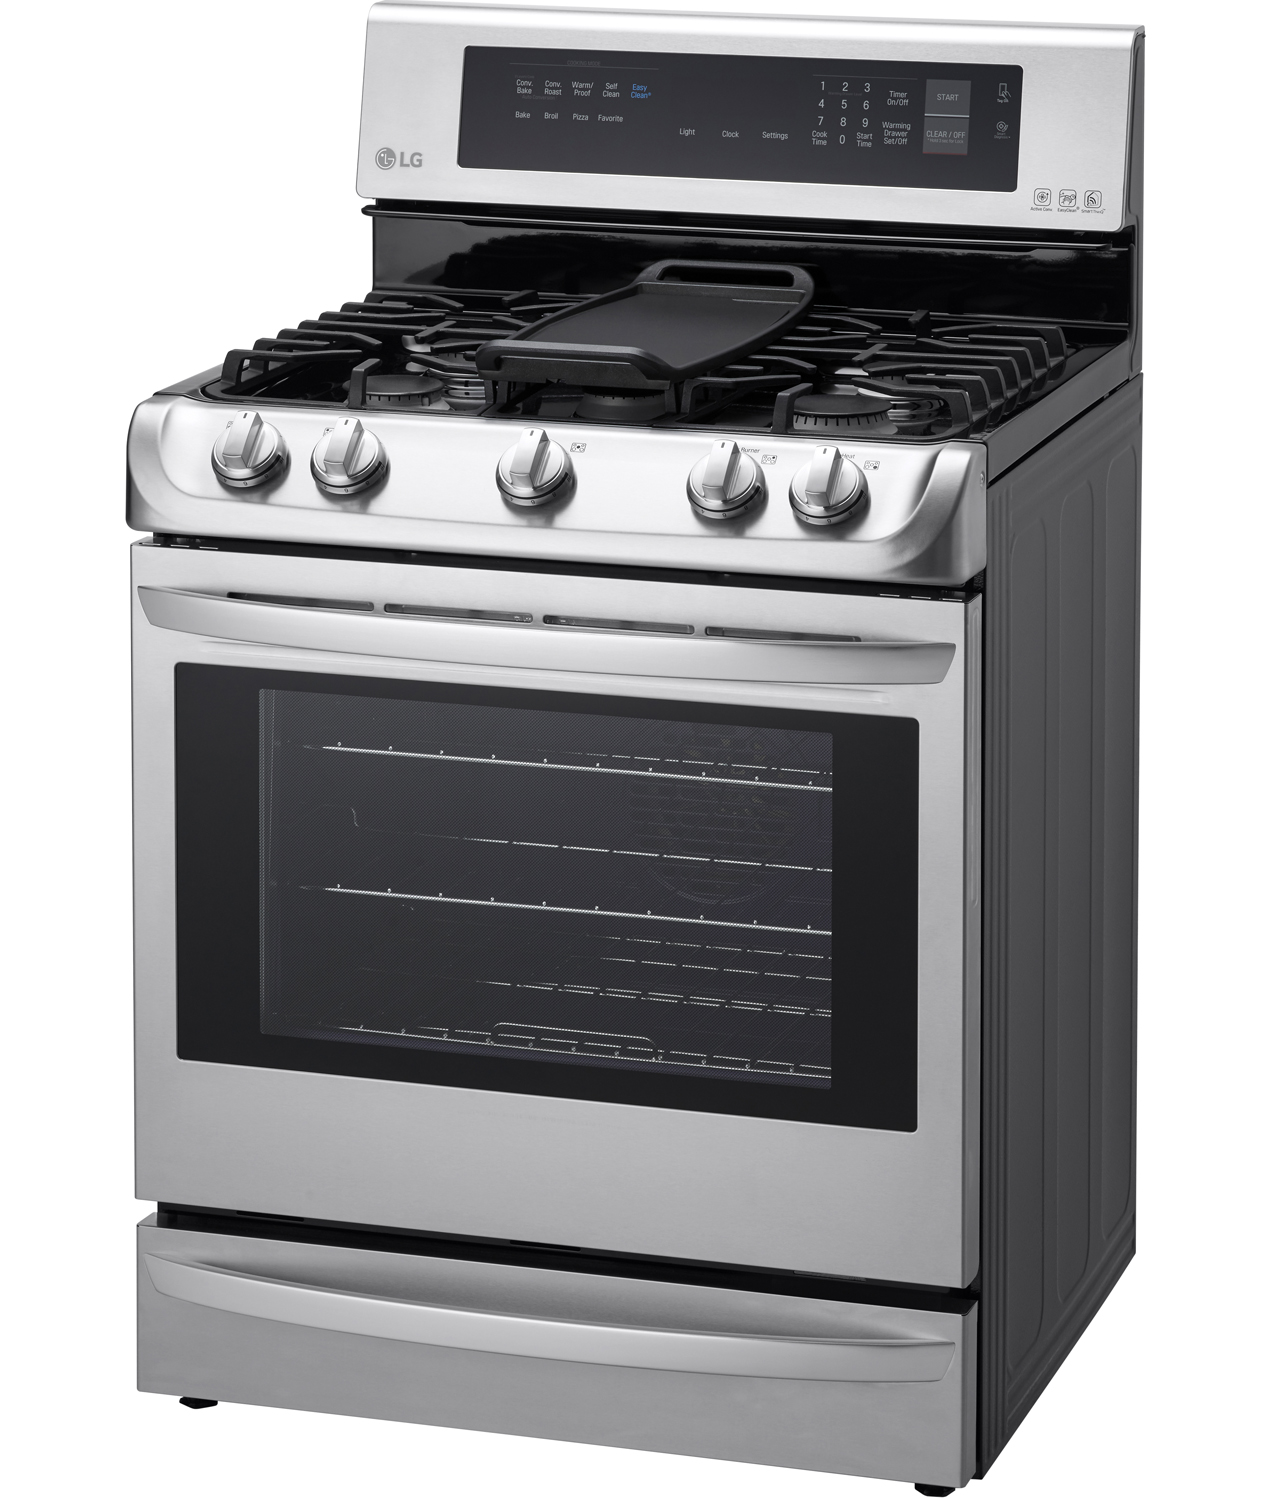 Stainless Steel Kitchen Stove lg stainless steel freestanding gas range - lrg4115st